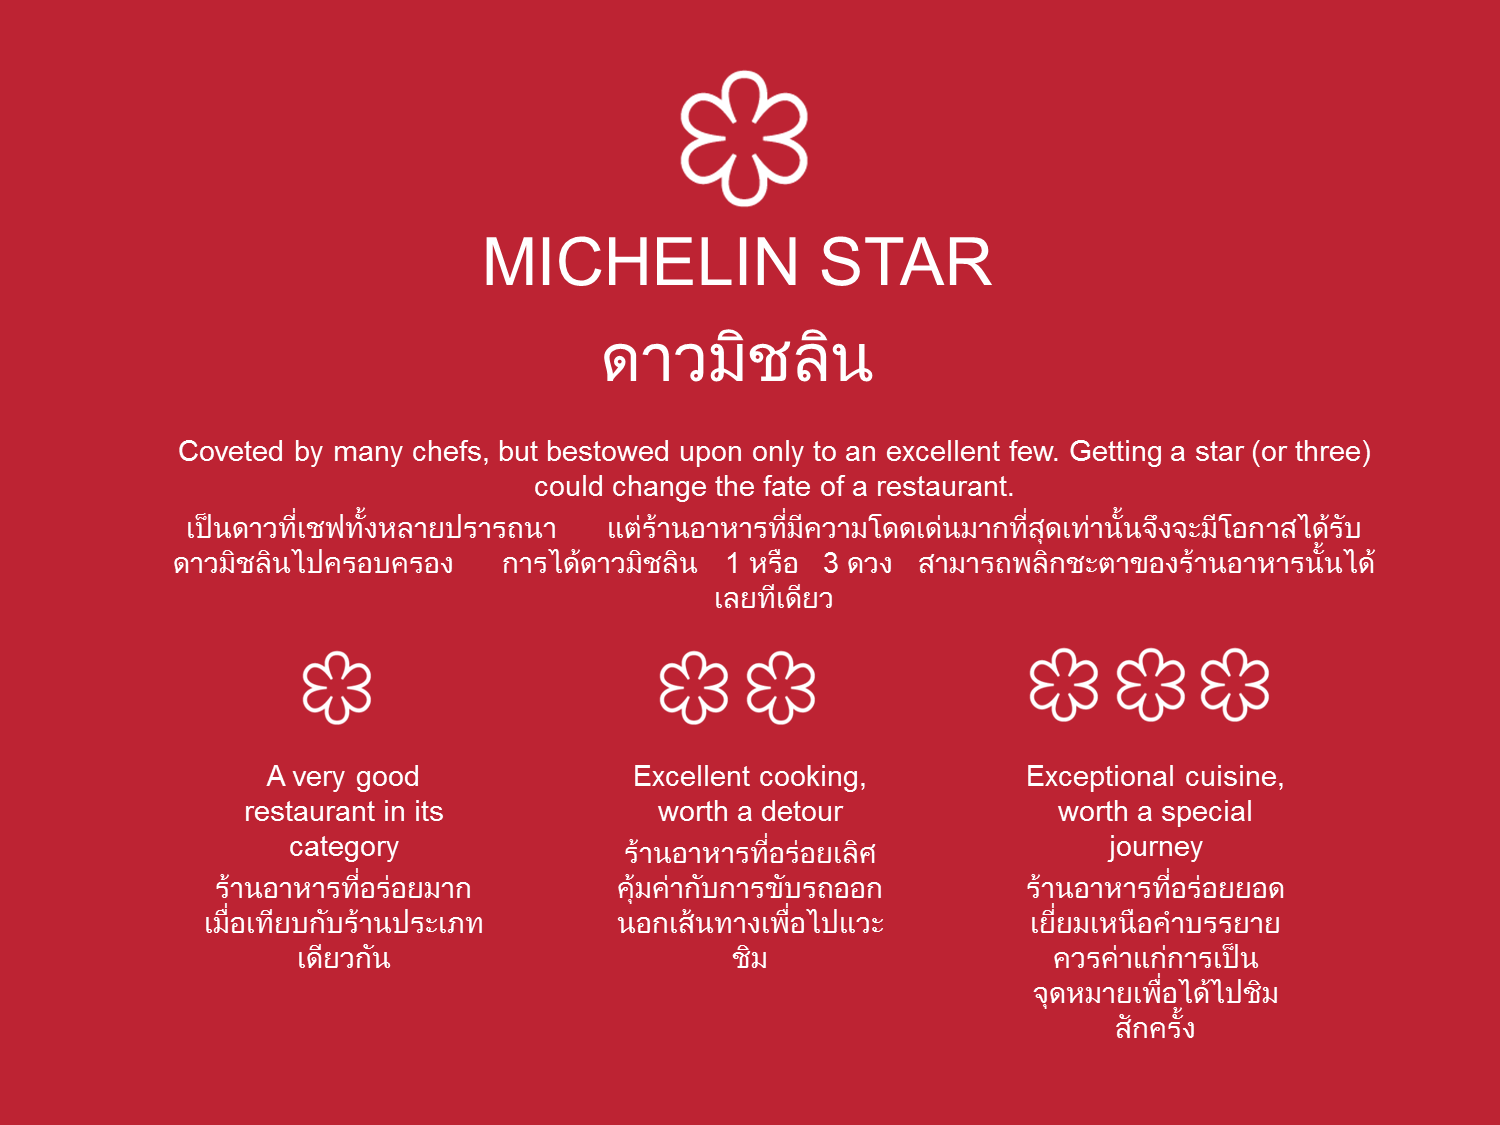 The Michelin Star Rating System